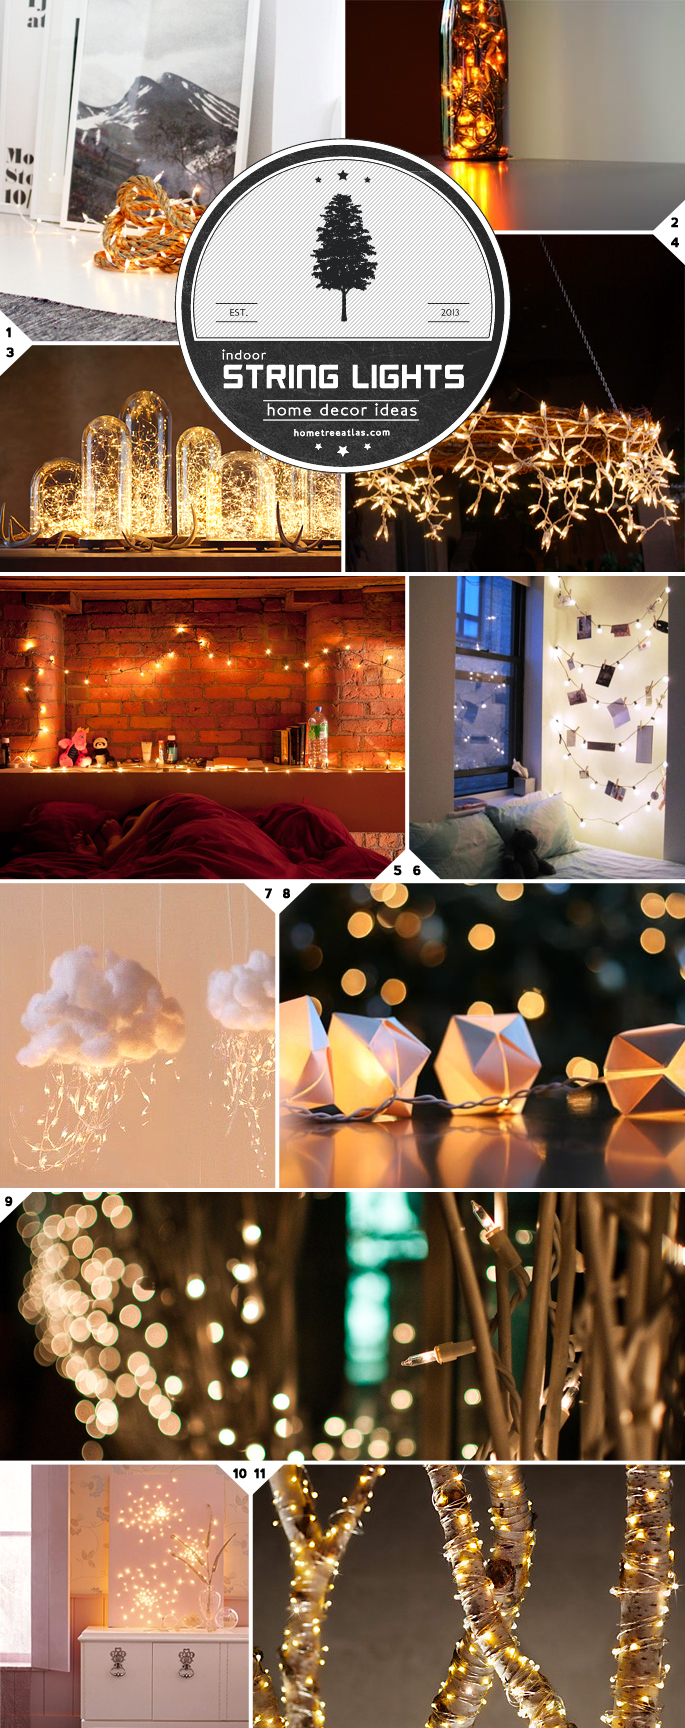 Indoor String Lights Decor Ideas